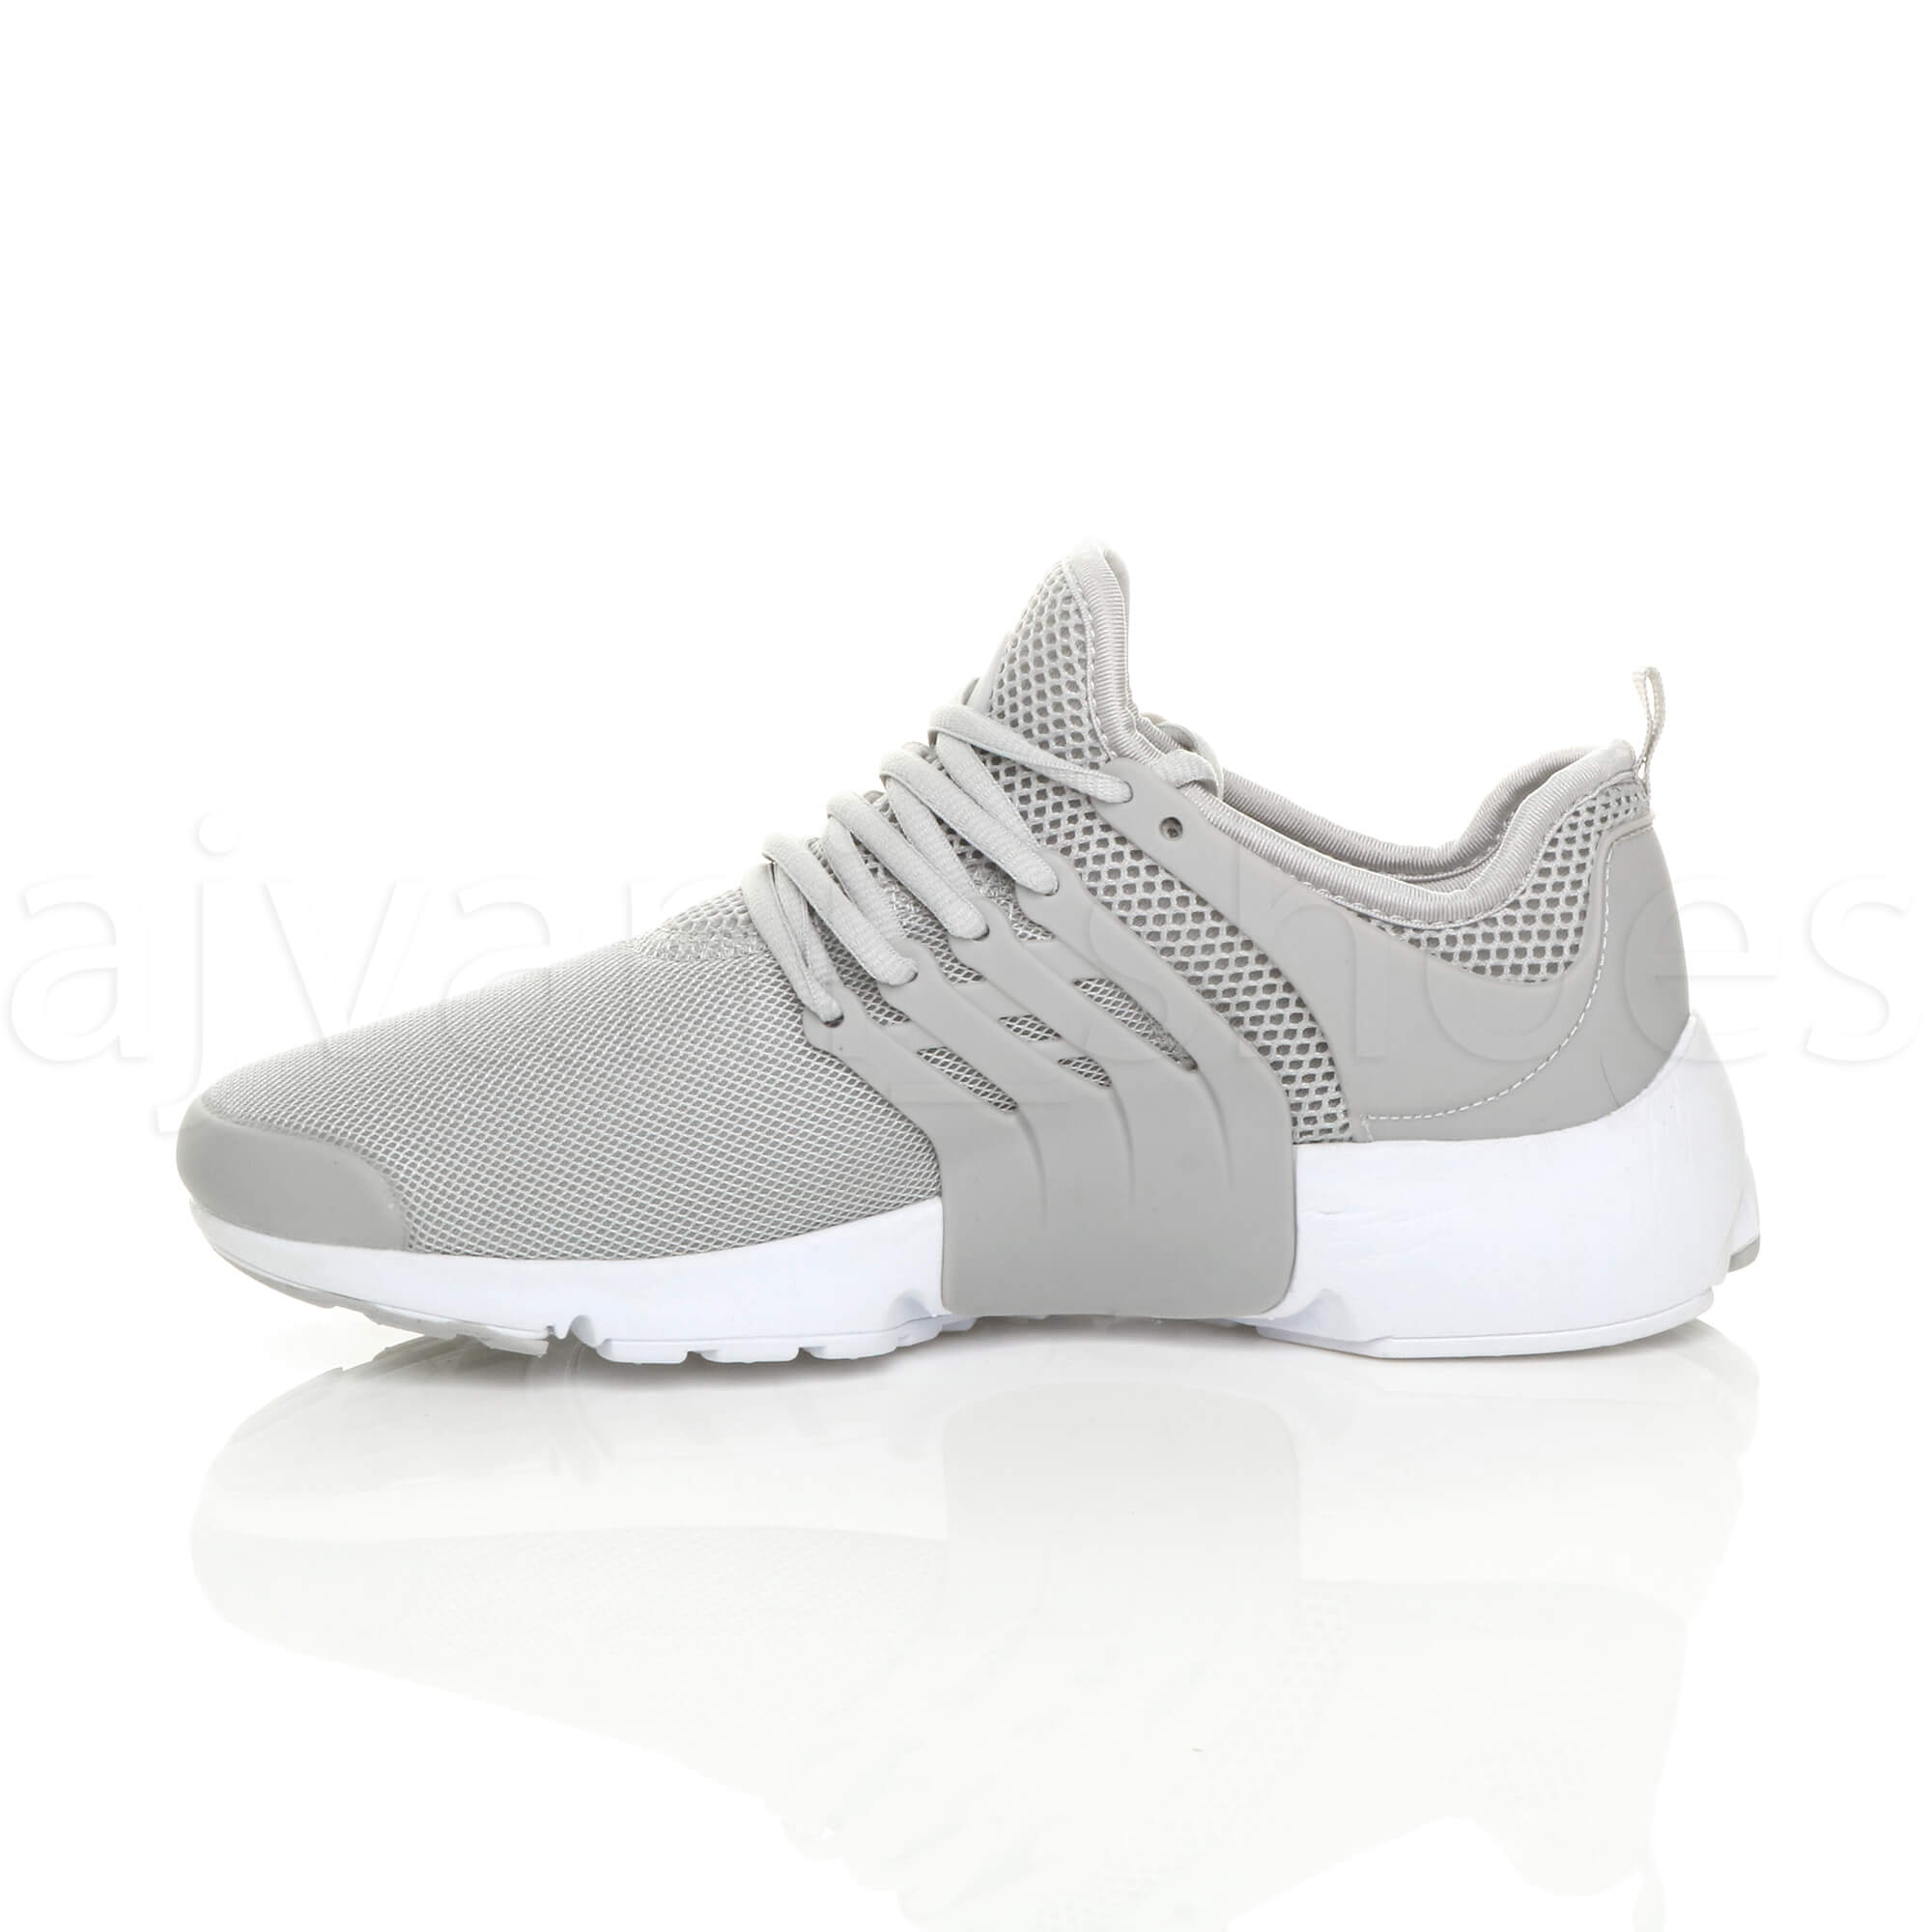 MENS-LACE-UP-SPORTS-GYM-FITNESS-RUNNING-FLEXIBLE-TRAINERS-CASUAL-SNEAKERS-SIZE thumbnail 20